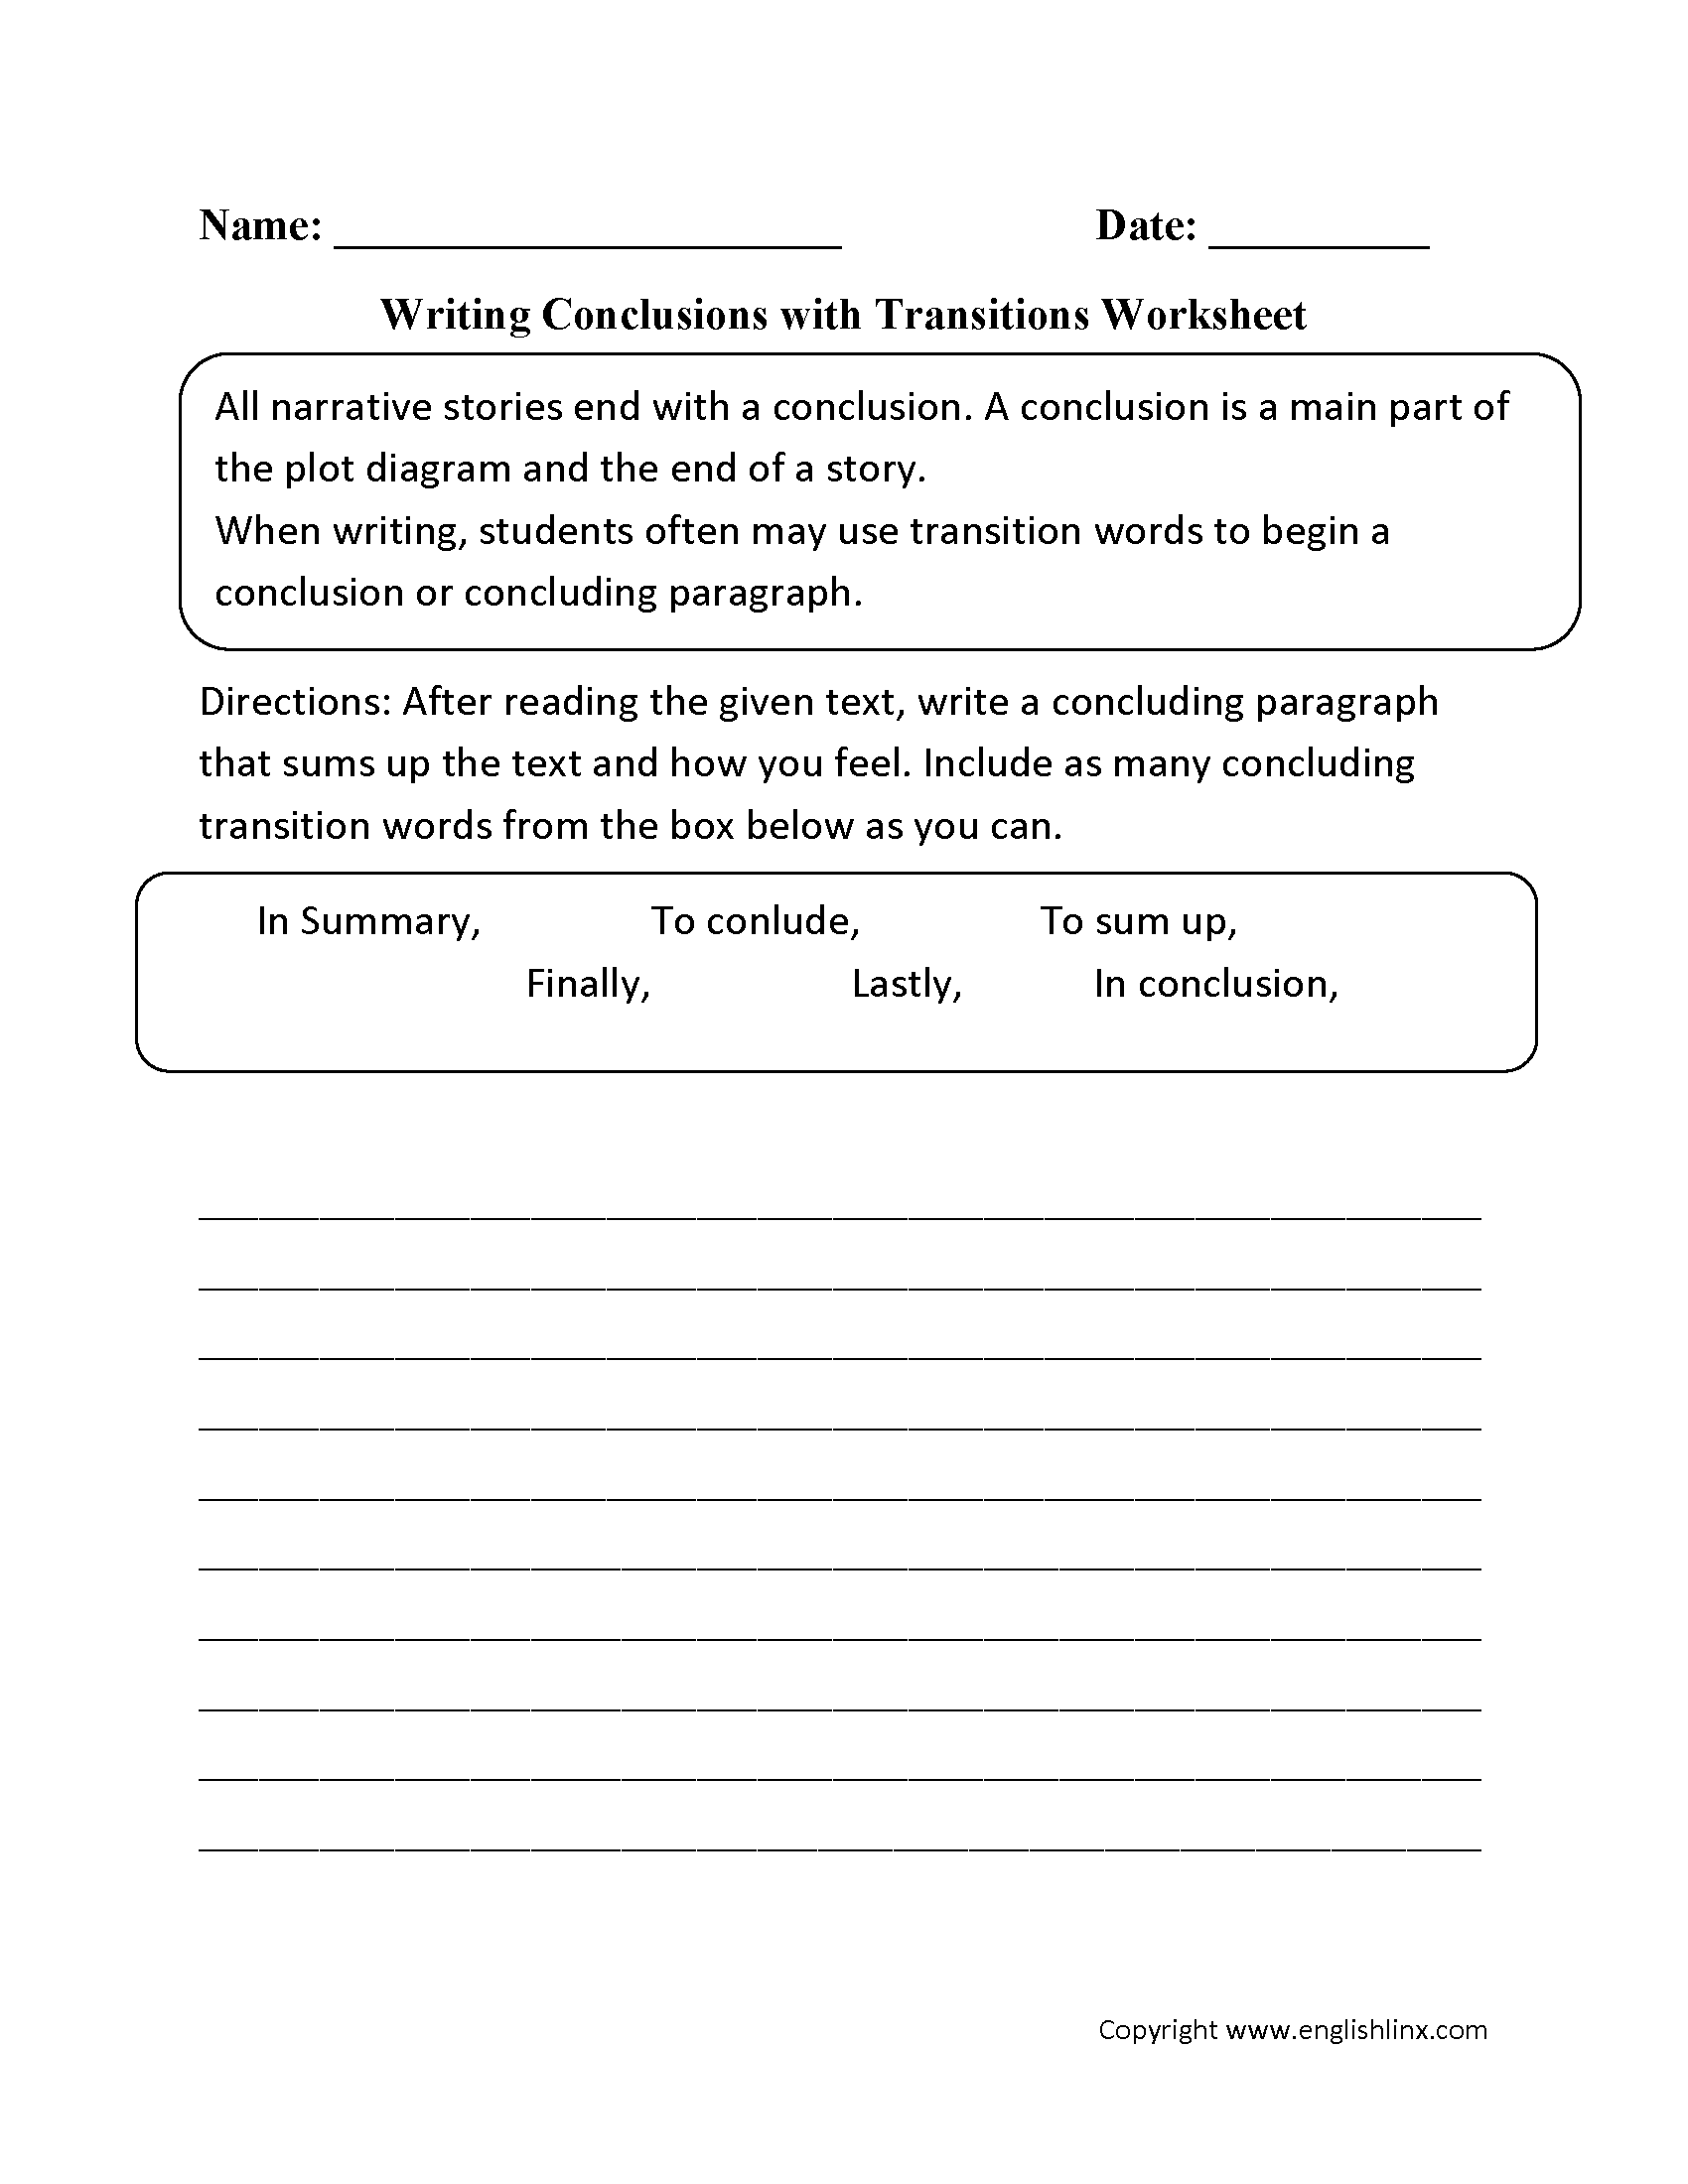 worksheet Writing Paragraphs Worksheets englishlinx com writing conclusions worksheets with transitions worksheets